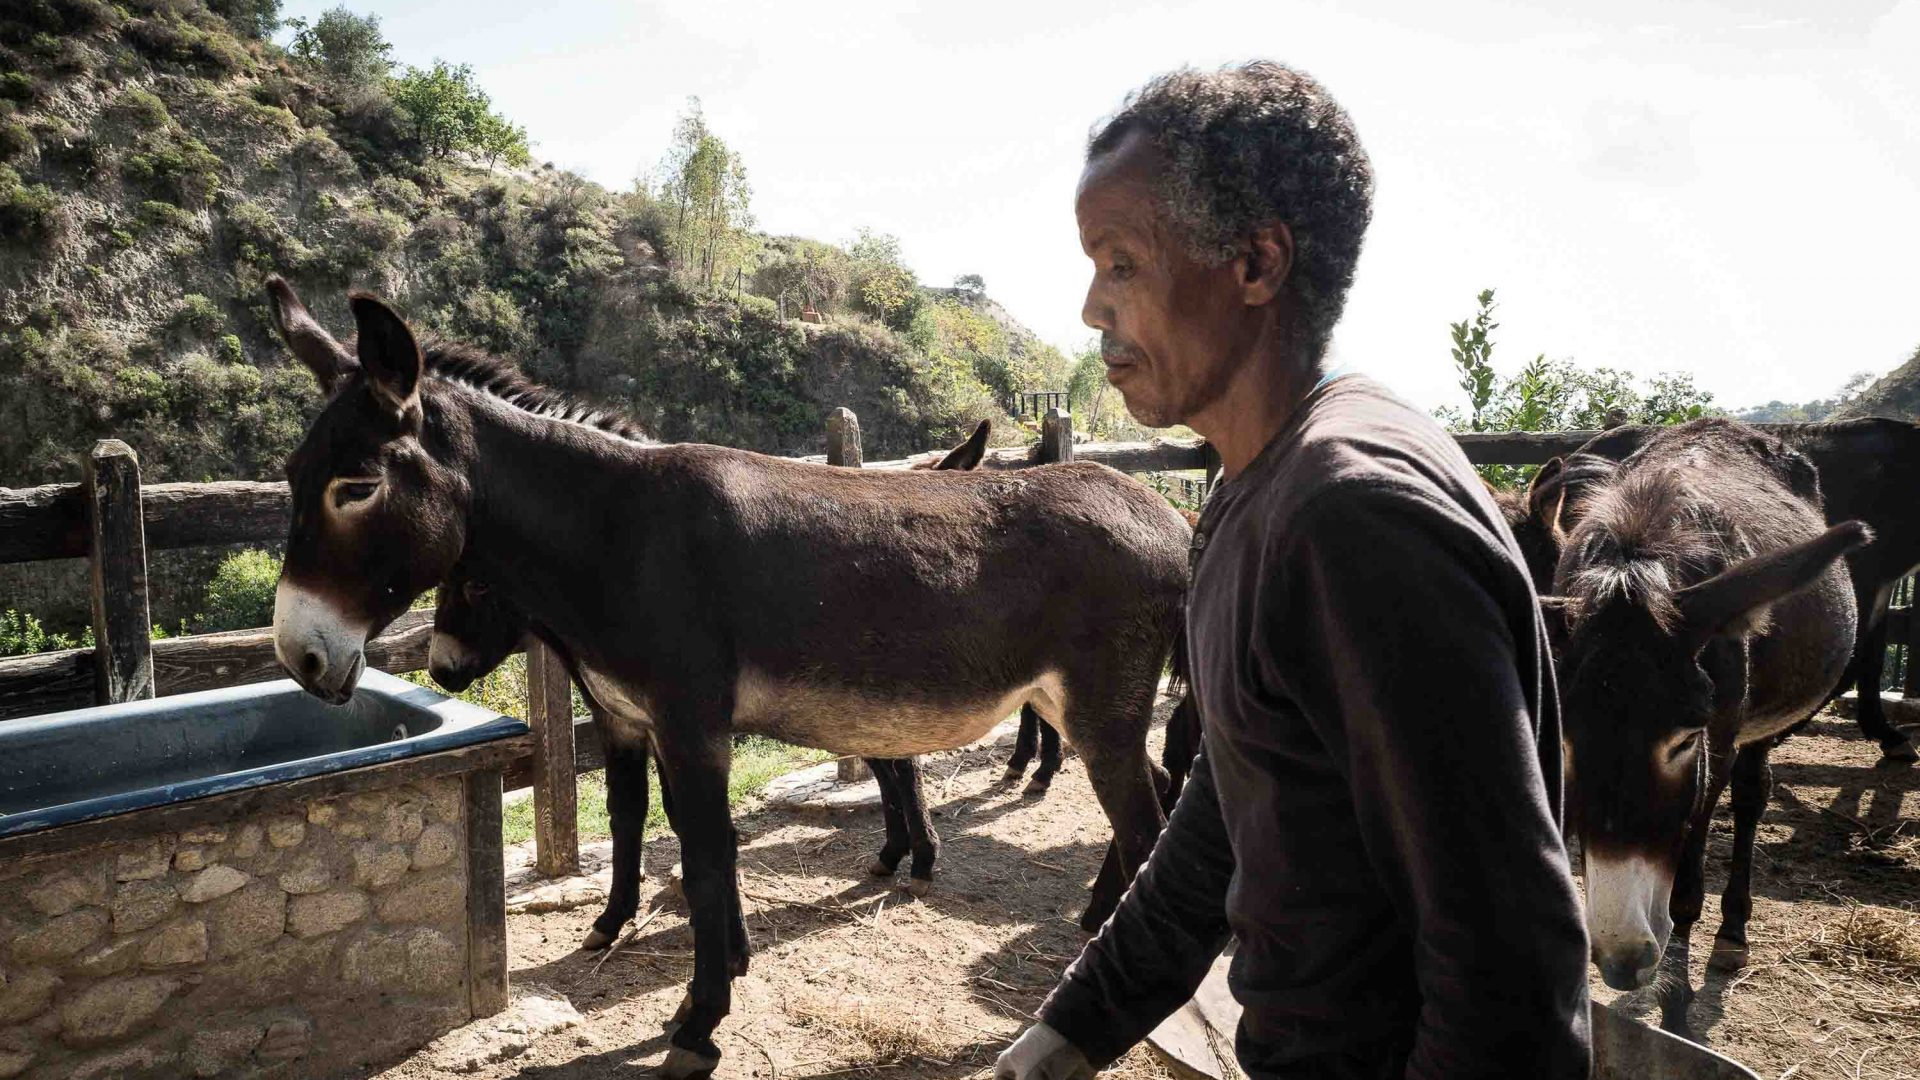 Kassai from Eritrea feeds donkeys on the didactic farm in Riace.